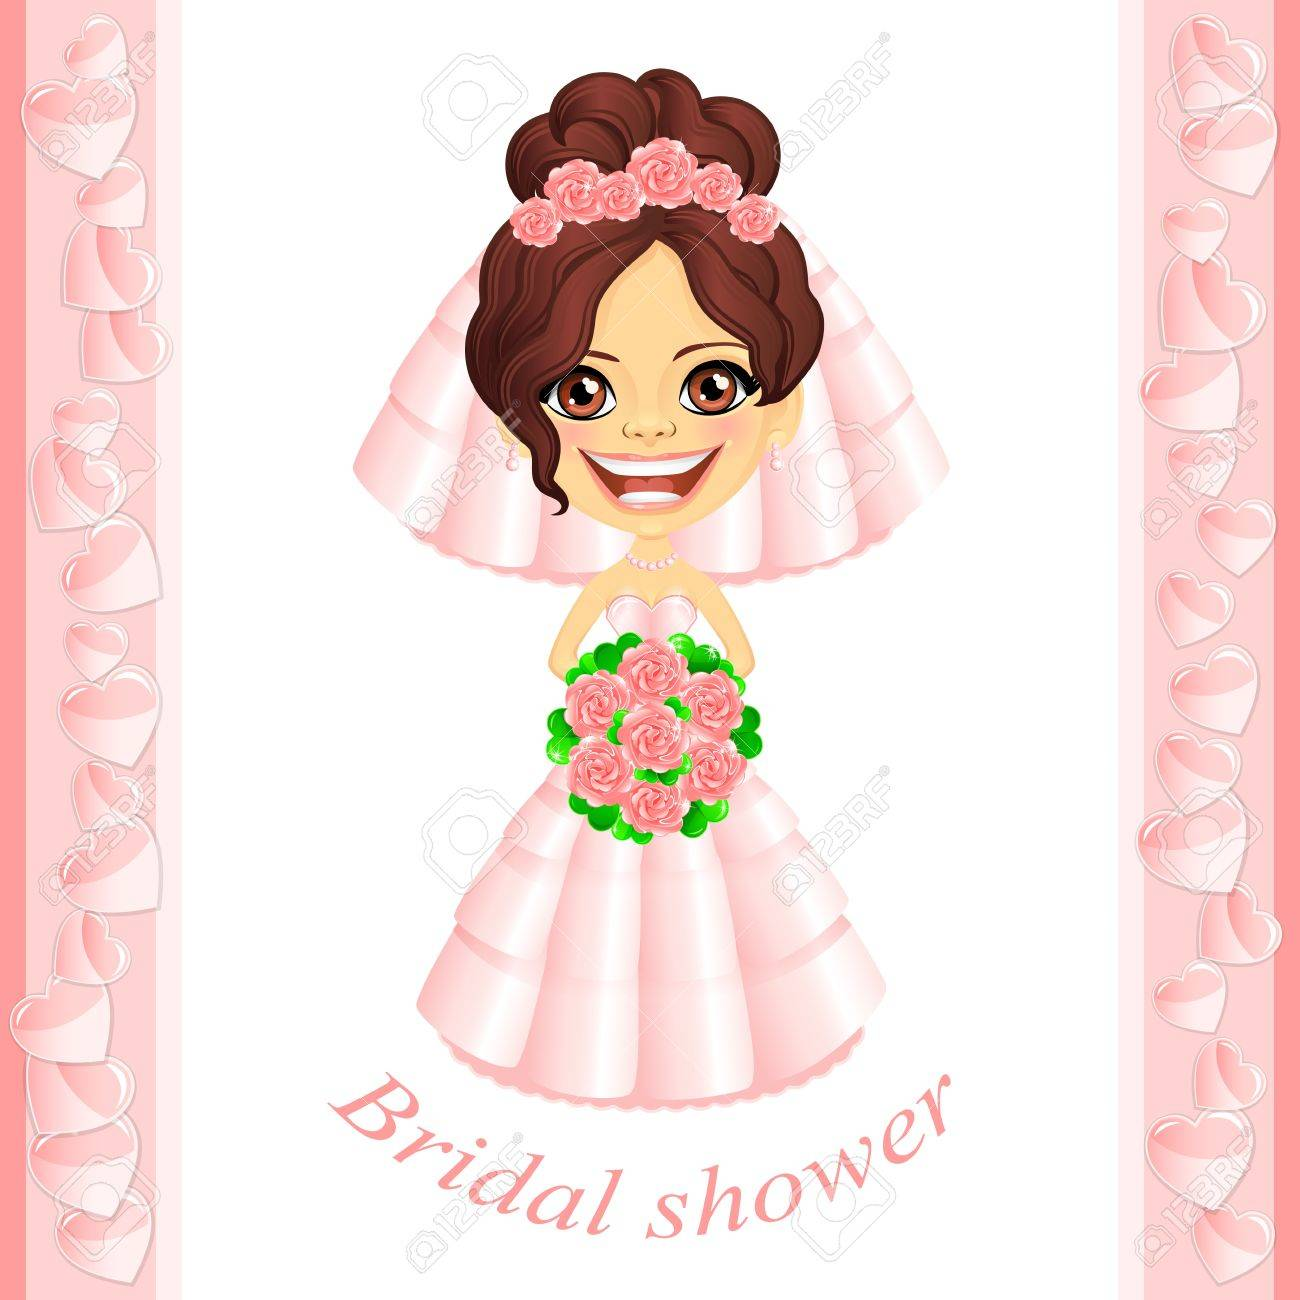 Miraculous Vector Bridal Shower Invitation With Cute Cartoon Bride Royalty Hairstyles For Men Maxibearus